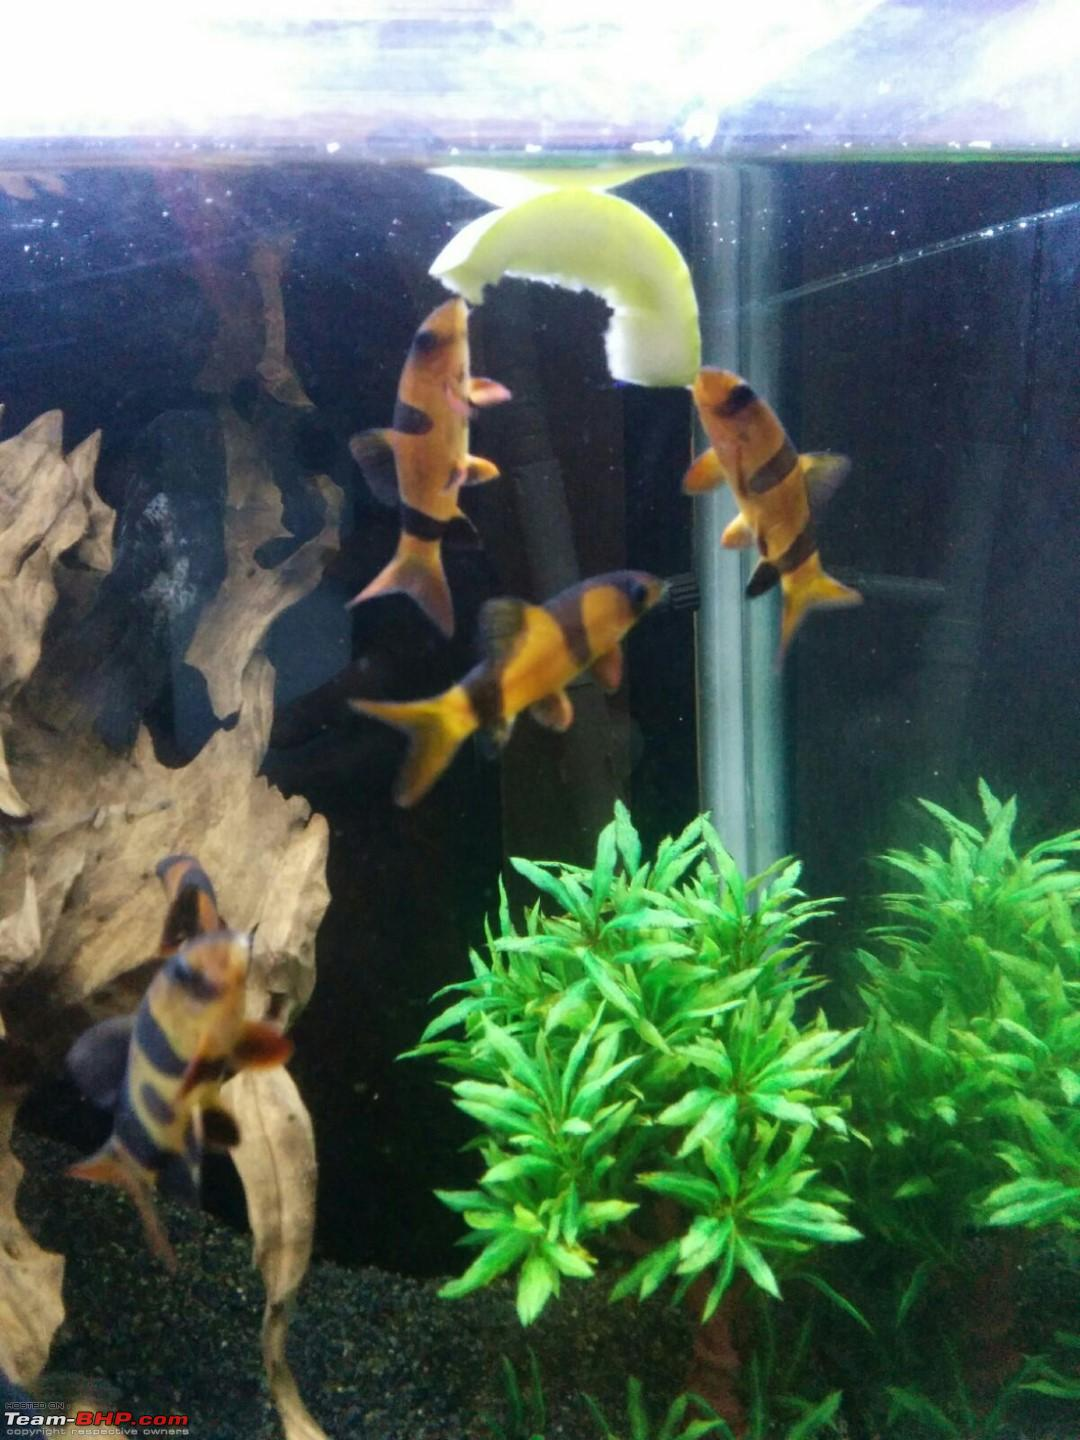 Fish aquarium price in bangalore - My Fishkeeping Hobby Img20160102wa0006 Jpg